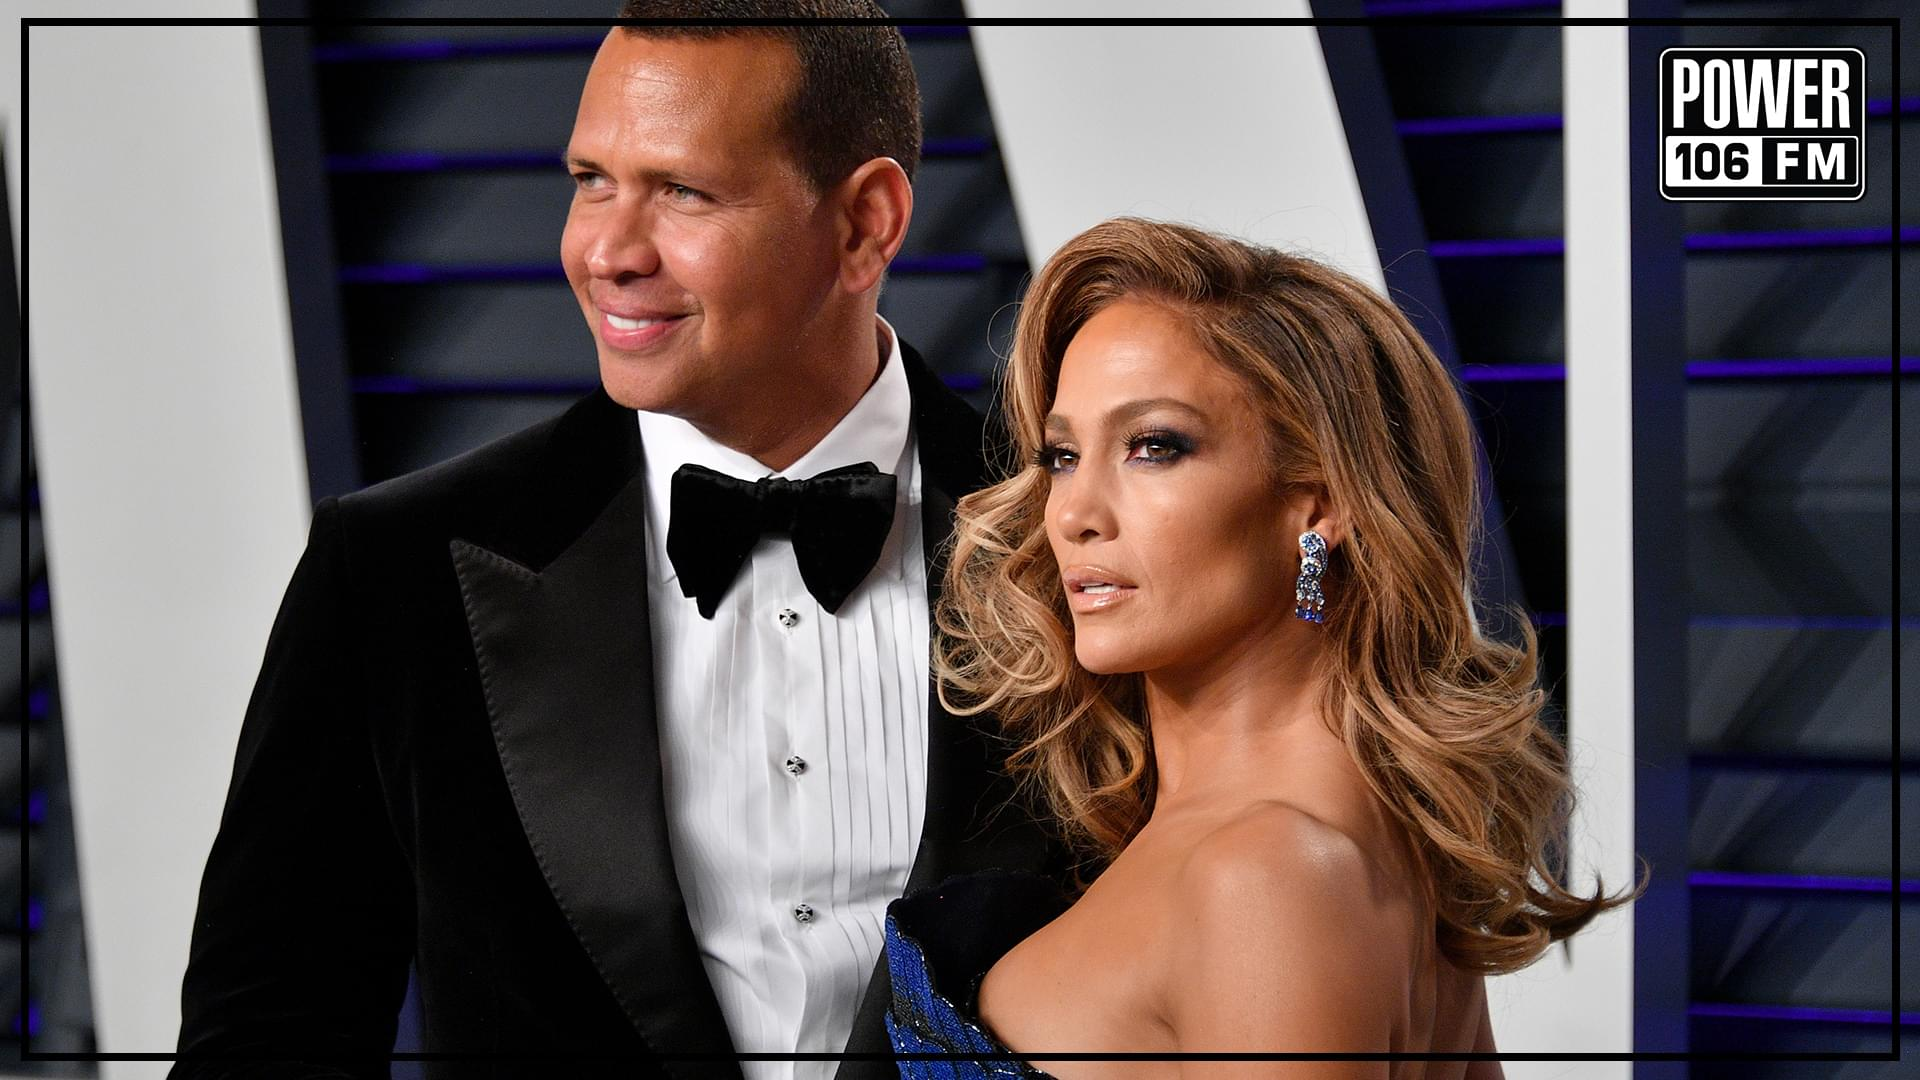 #DailyDose: Reactions To Jennifer Lopez And A-Rod's Engagement